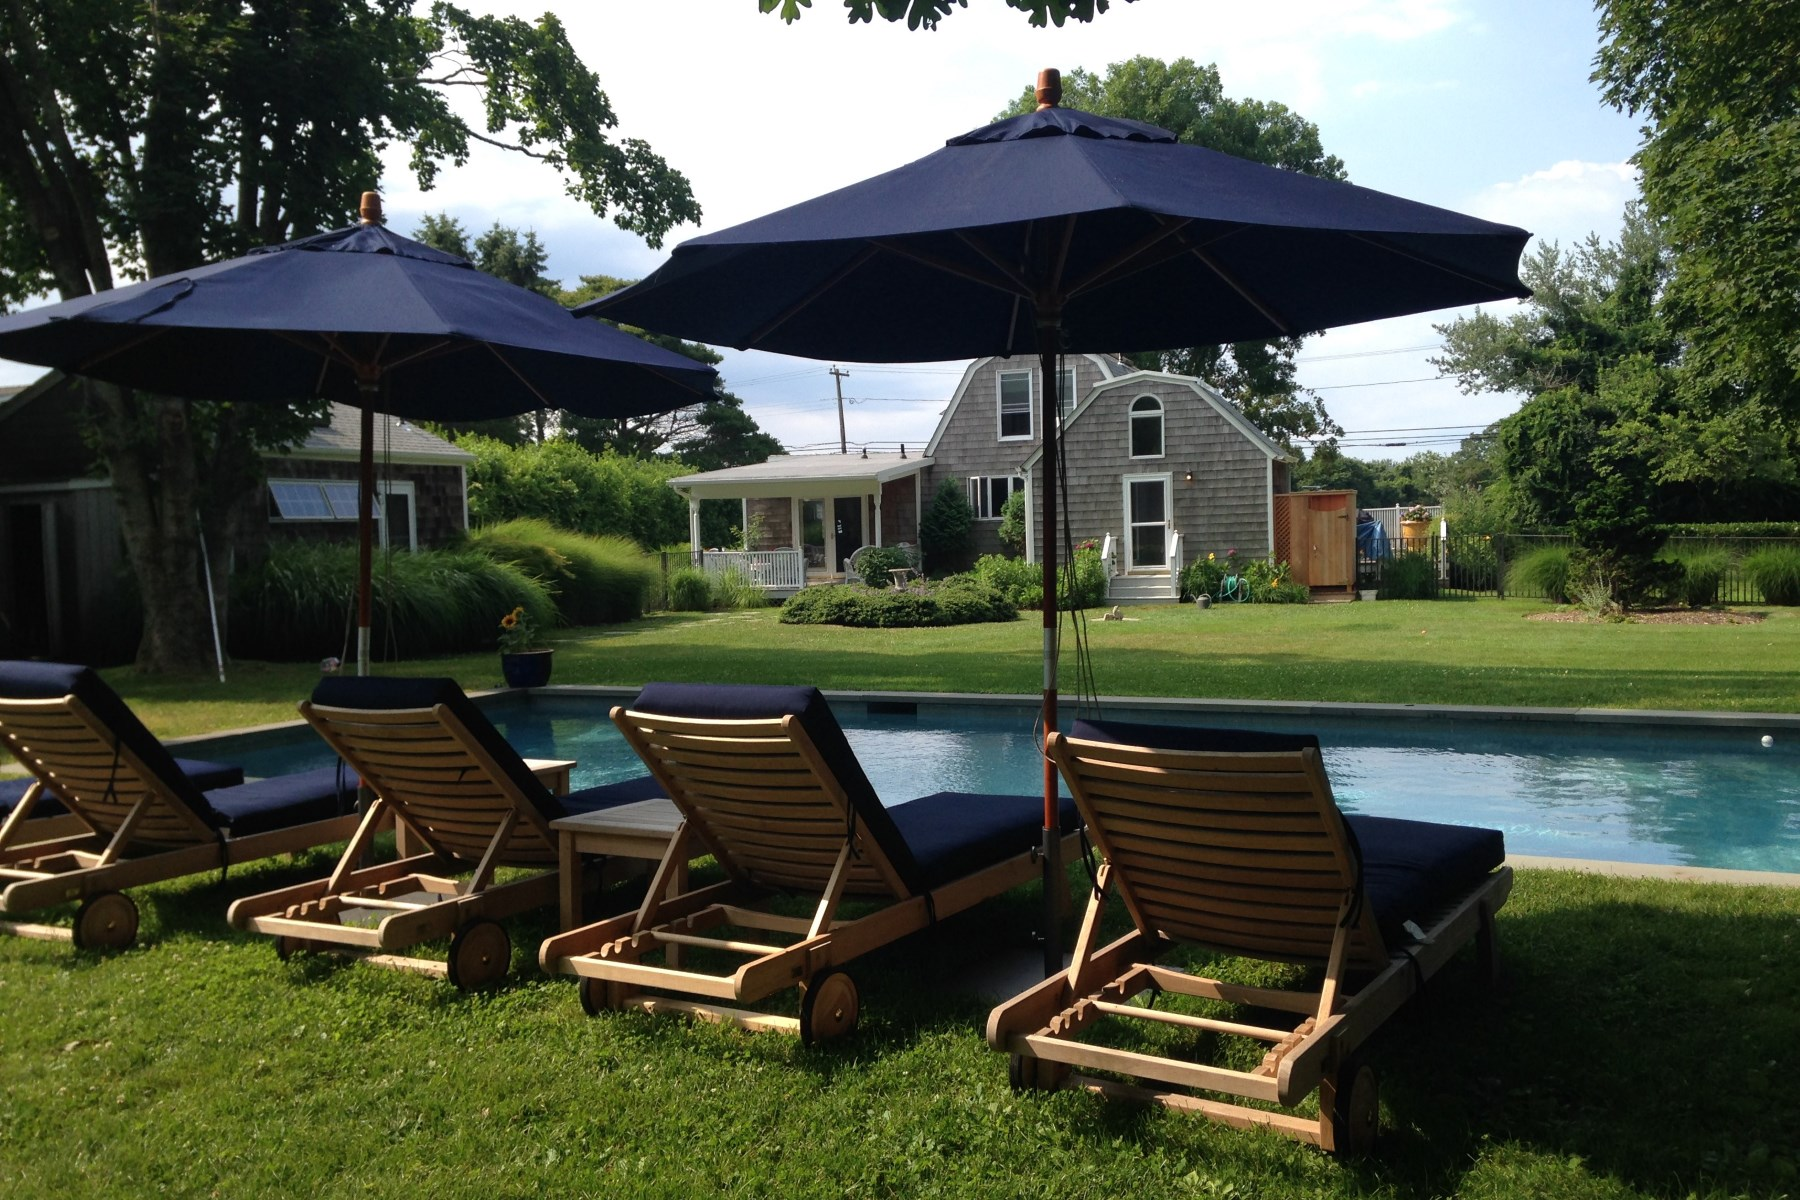 Single Family Home for Rent at Golf Course Views 101 Sebonac Southampton, New York 11968 United States